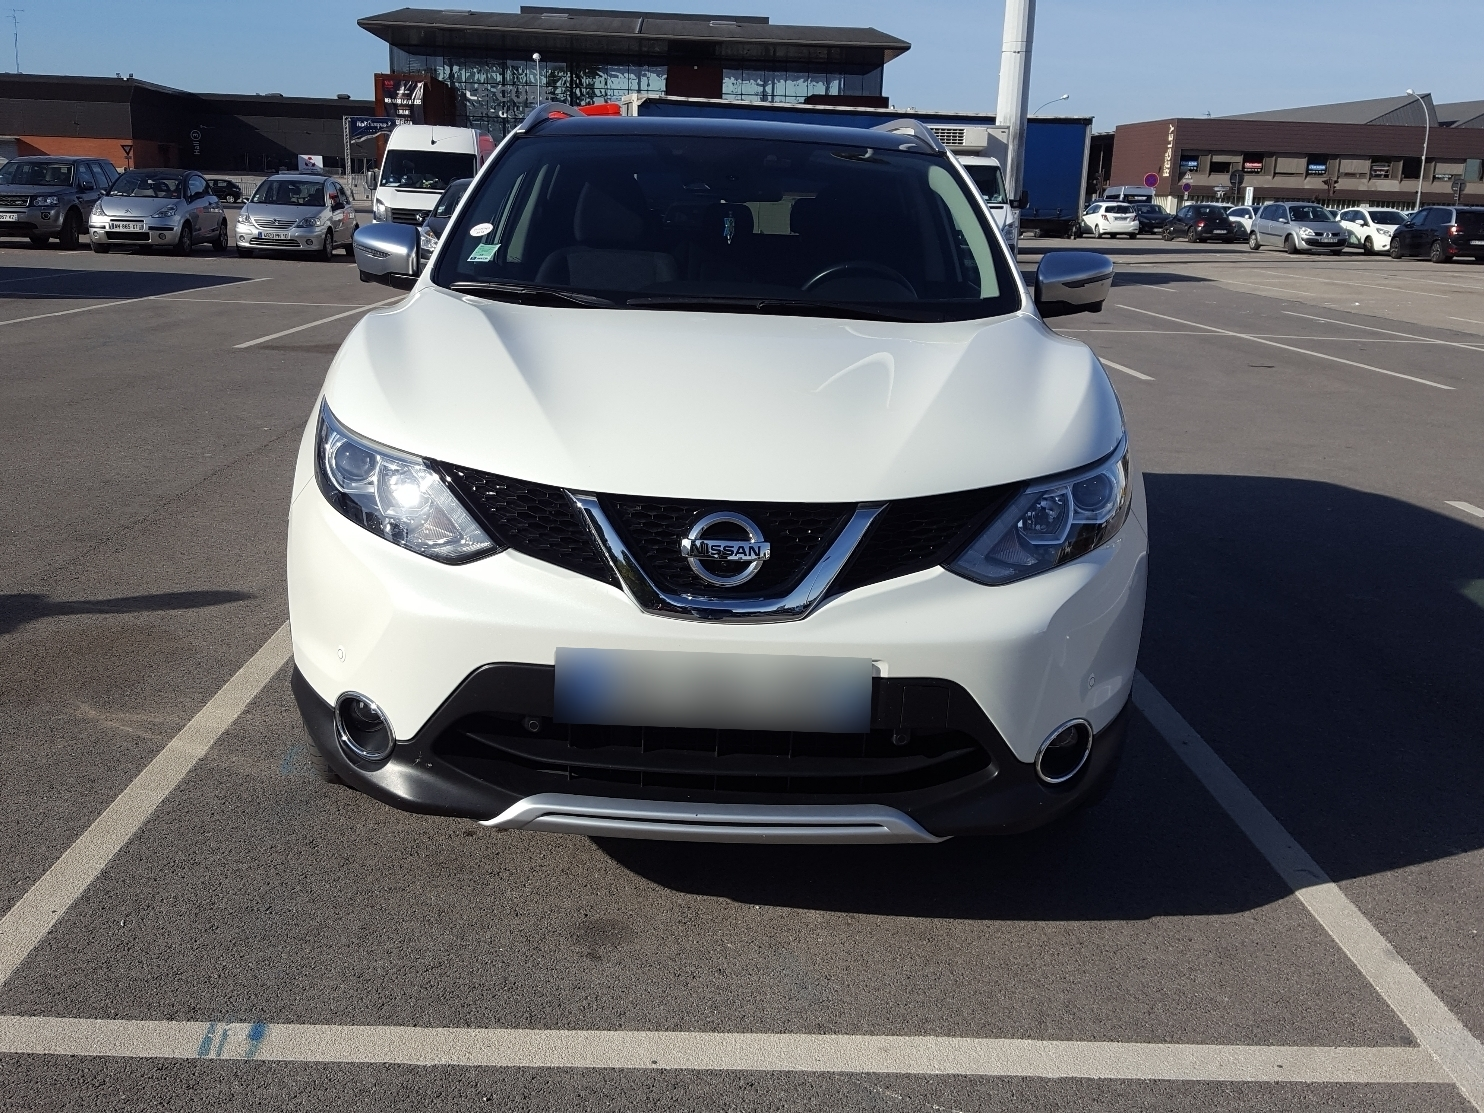 nissan qashqai 1 6 dci 130 white edition 2wd carventura. Black Bedroom Furniture Sets. Home Design Ideas